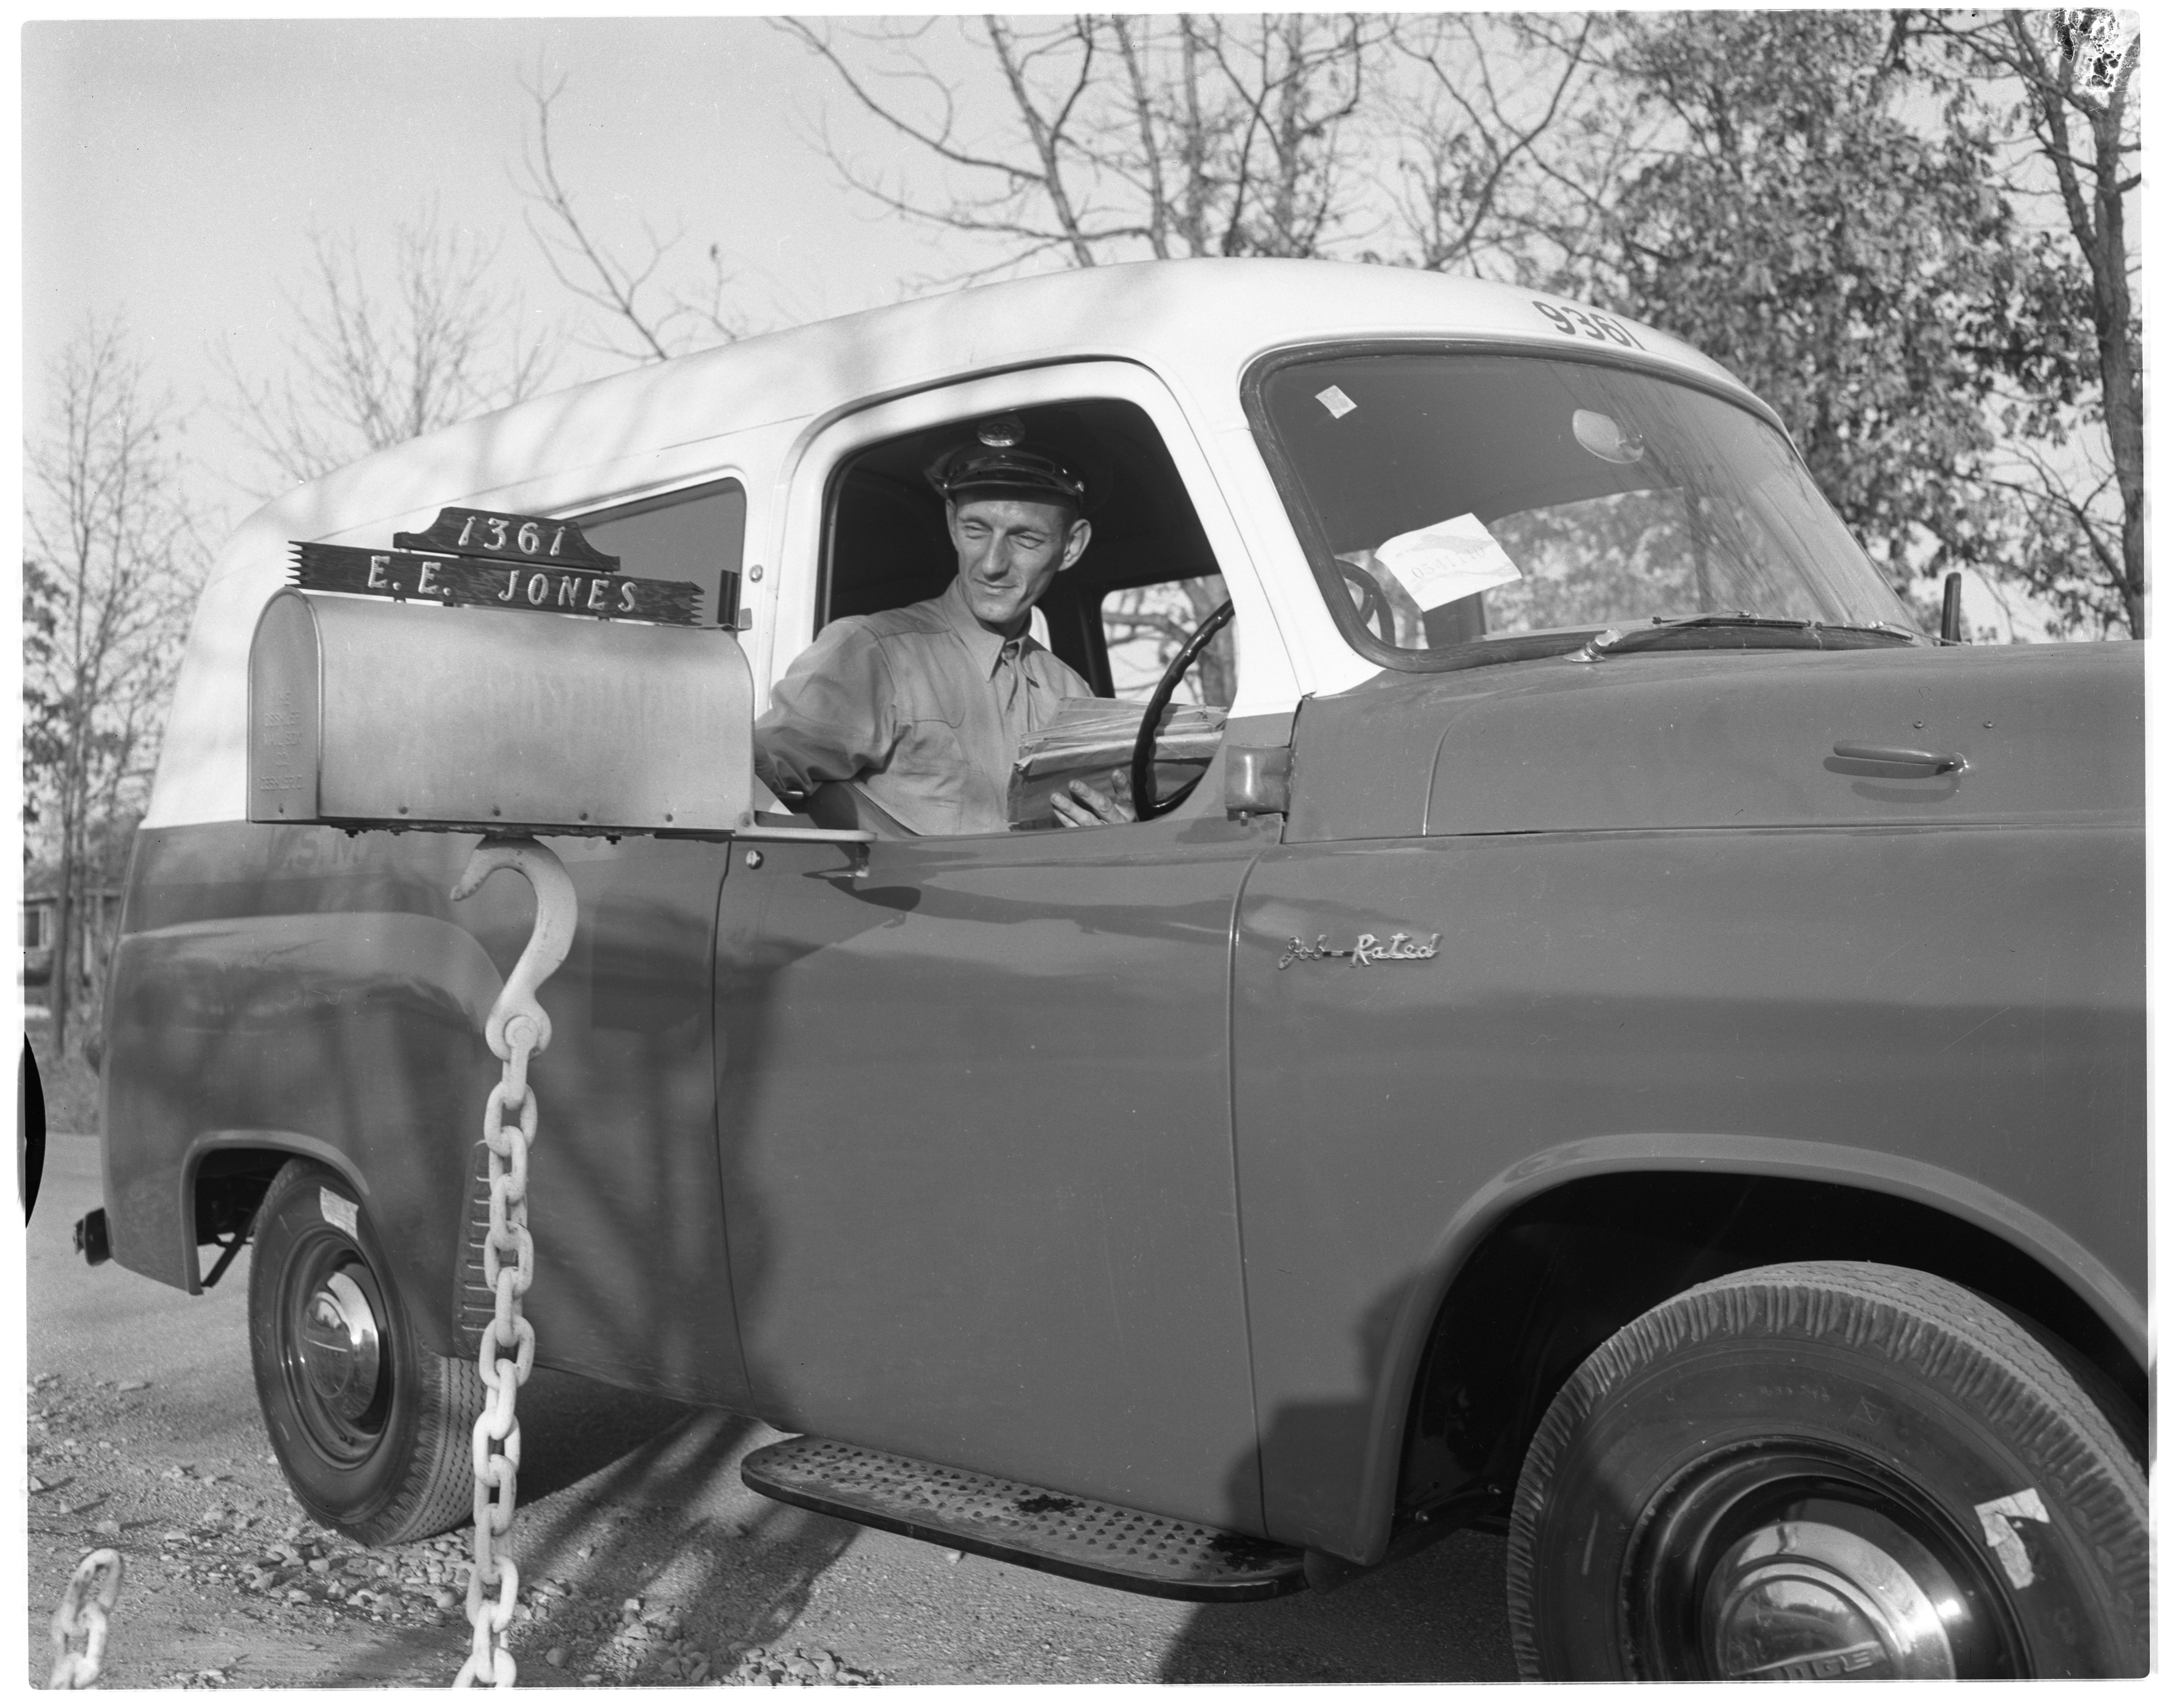 New Mail Truck, November 1954 image